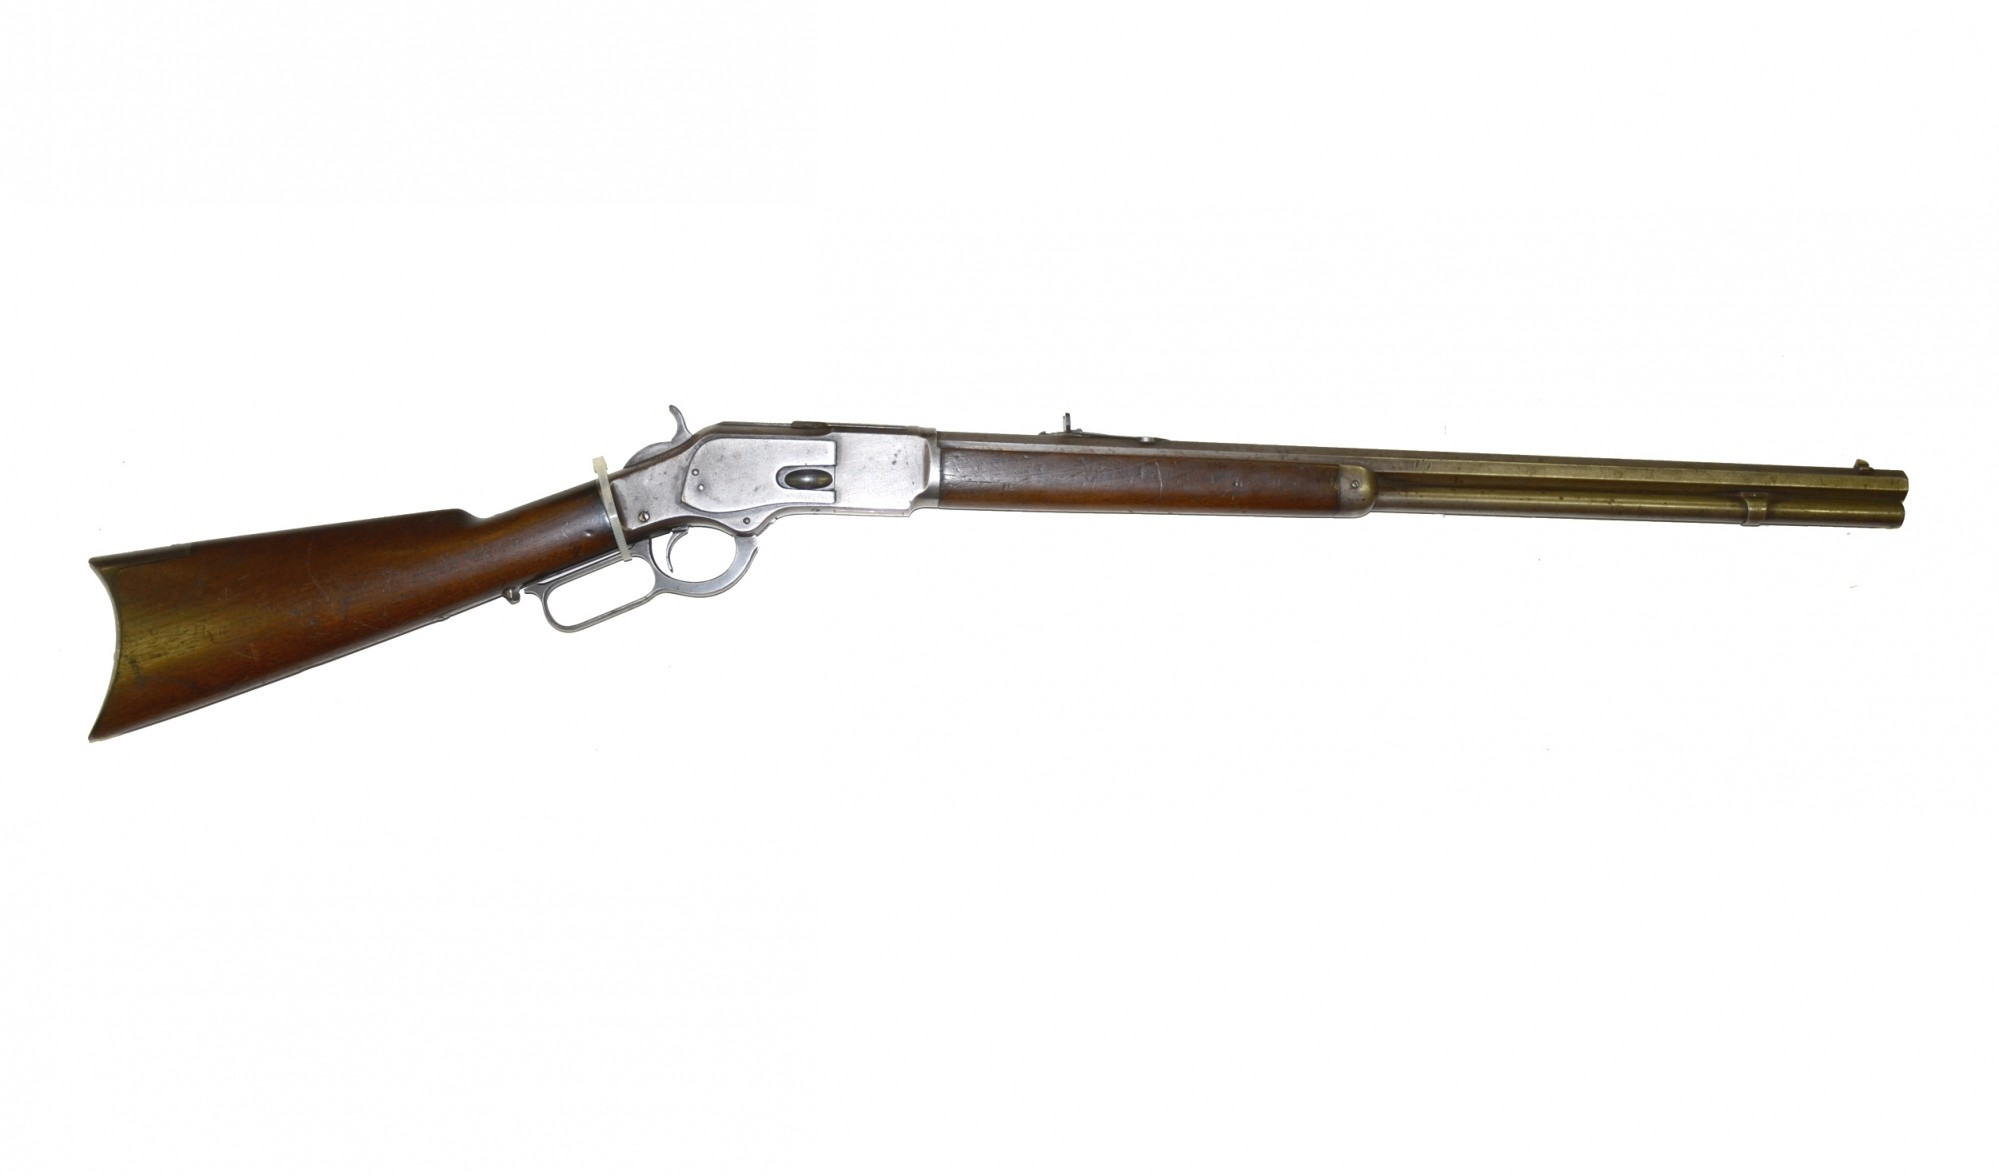 WINCHESTER 3RD MODEL 1873 LEVER-ACTION RIFLE